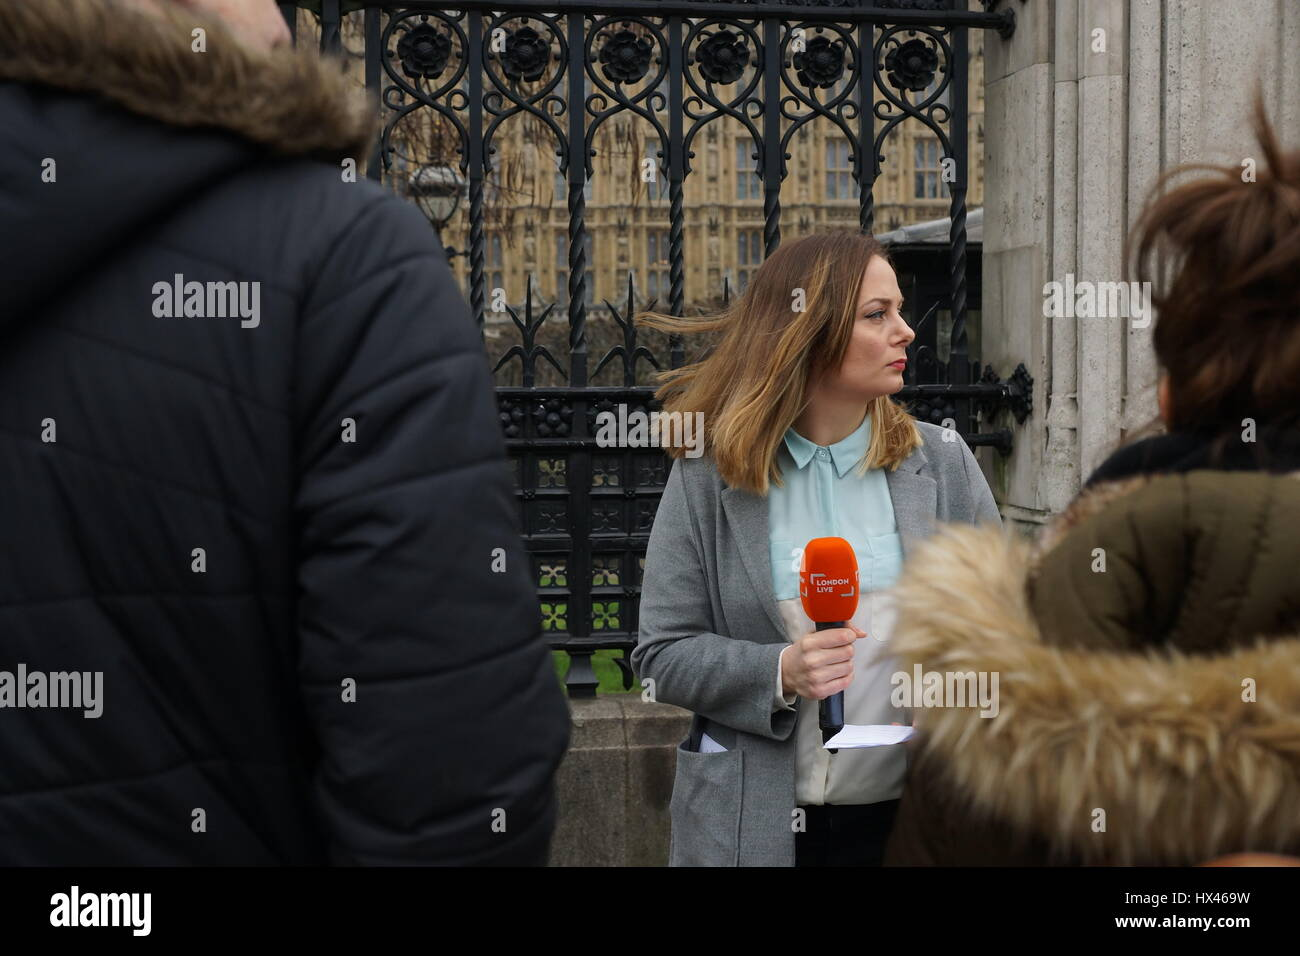 London, UK. 23rd Mar, 2017. Television journalist reports from the scene outside the Houses of Parliament in the - Stock Image